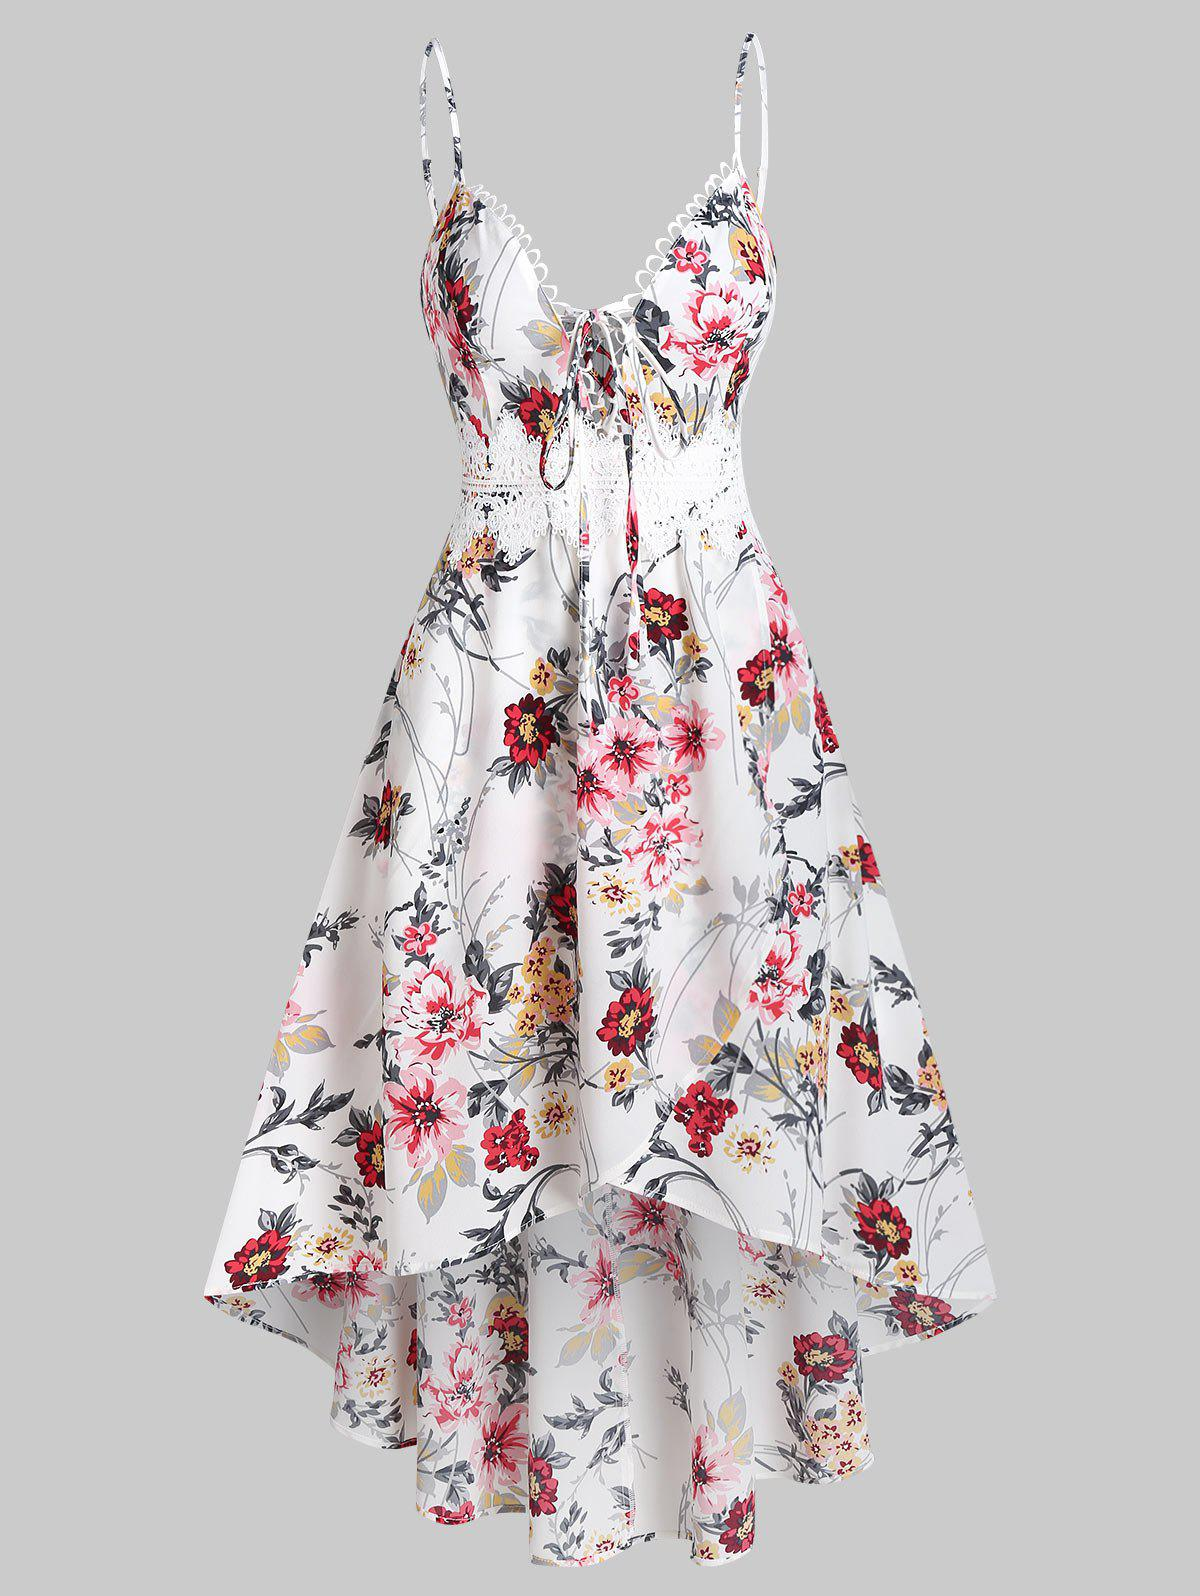 Shops Plunging Neck Bowknot Floral Print Cami Dress